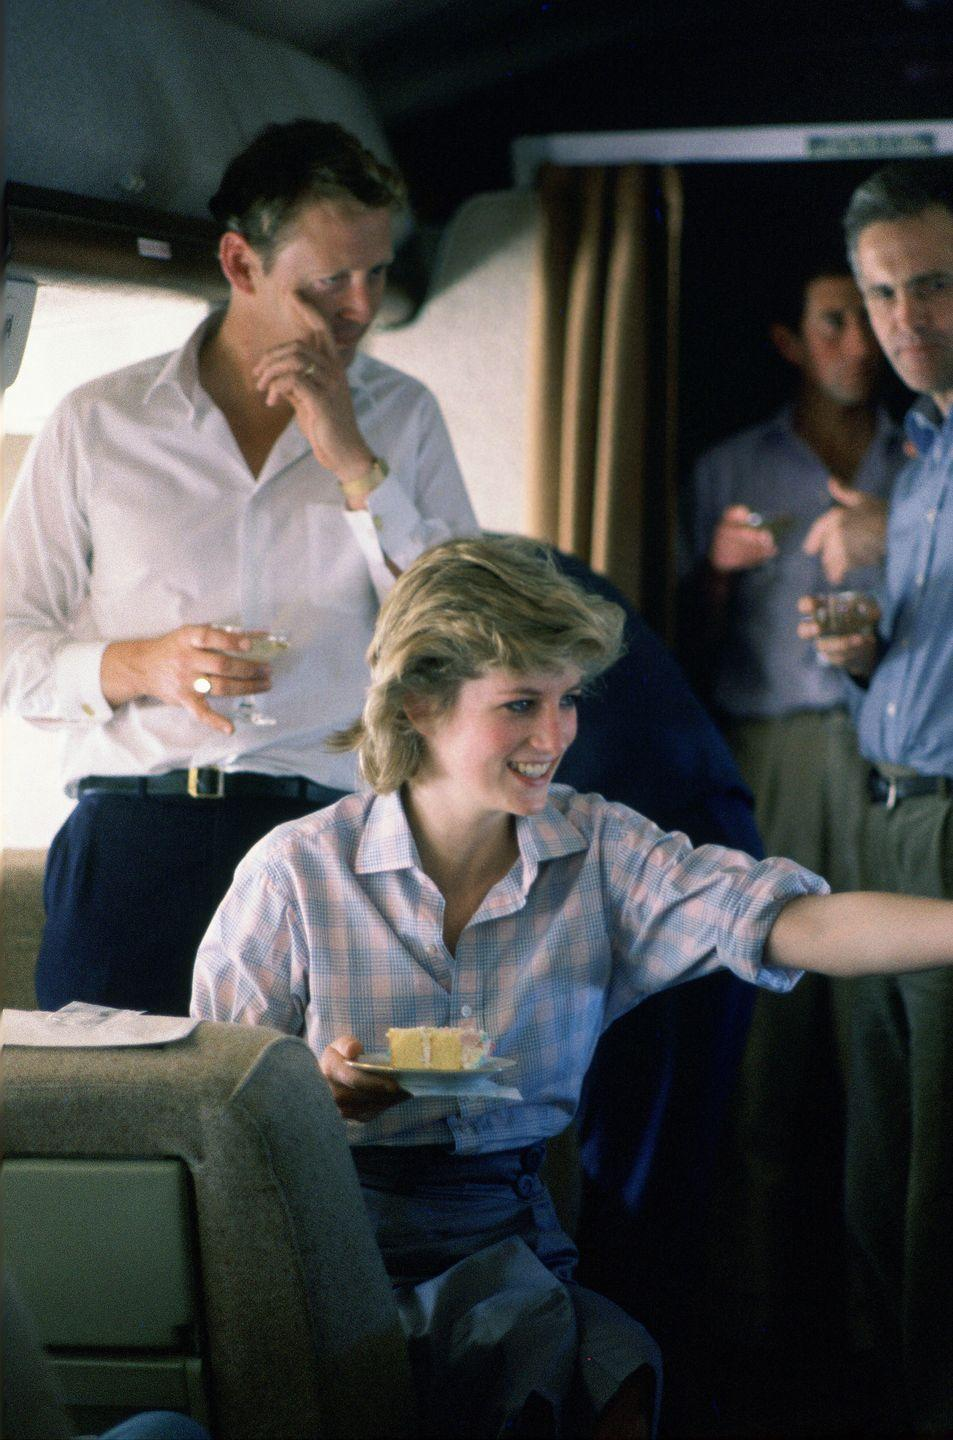 <p>Aboard an Australian Air Force Plane, Princess Diana held an impromptu birthday party for the valet. </p>